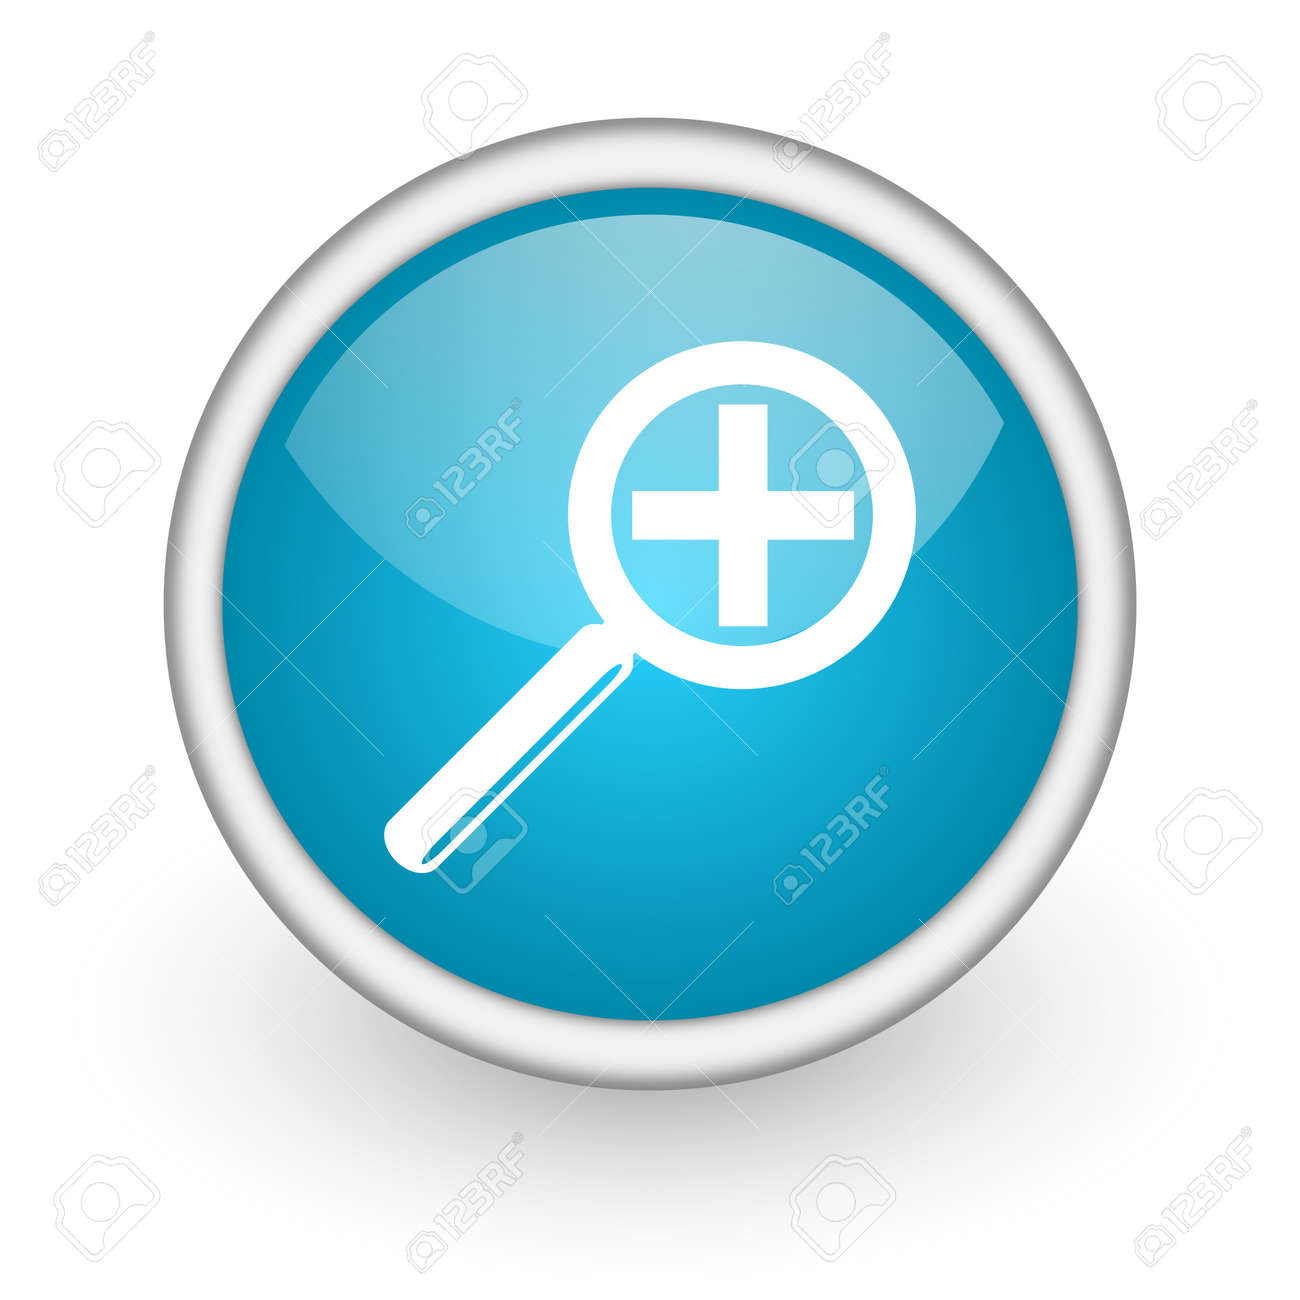 blue circle glossy web icon with pictogram on white background Stock Photo - 17426326